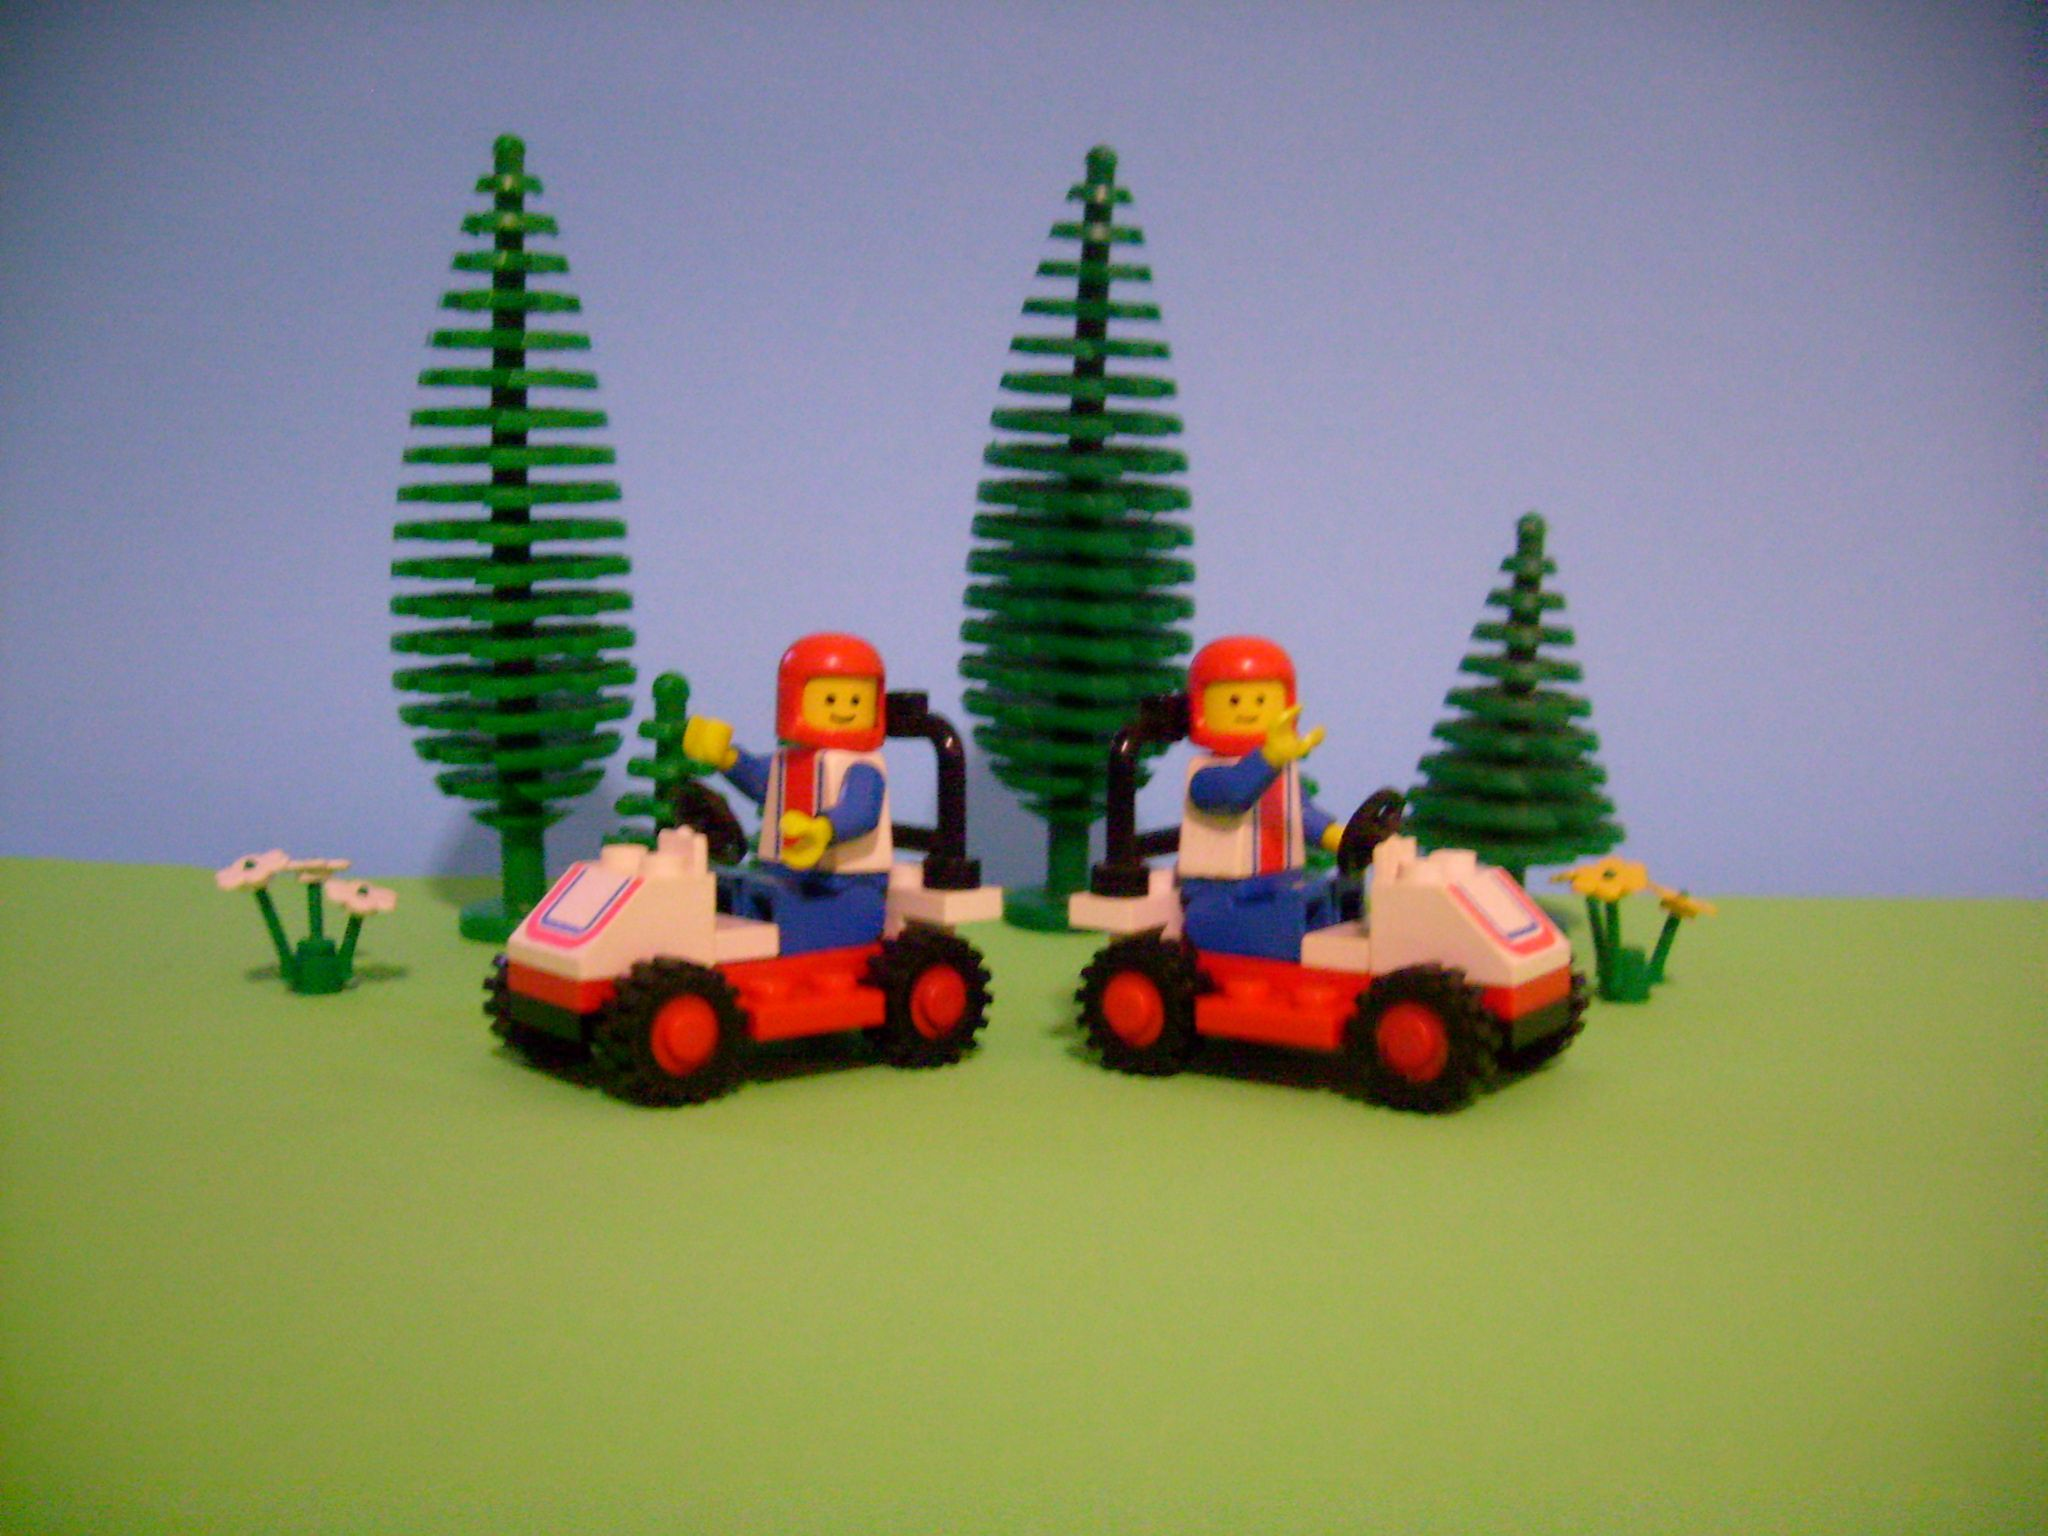 Lego 66091 Race Car (1980) one of two sets where I